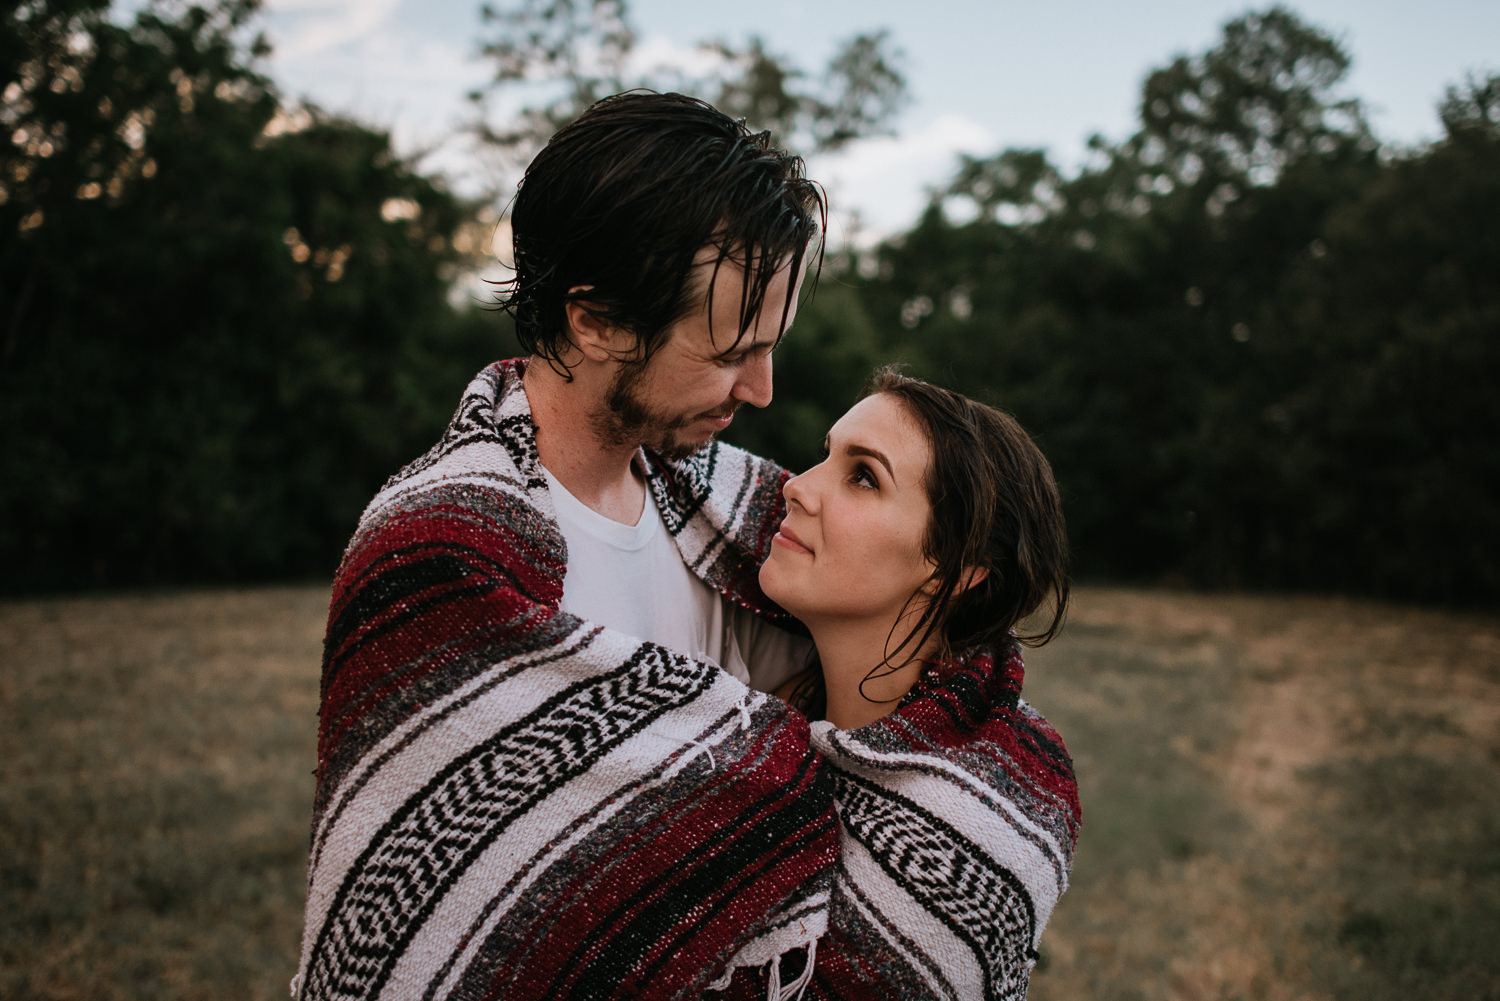 romantic engagement photo in park